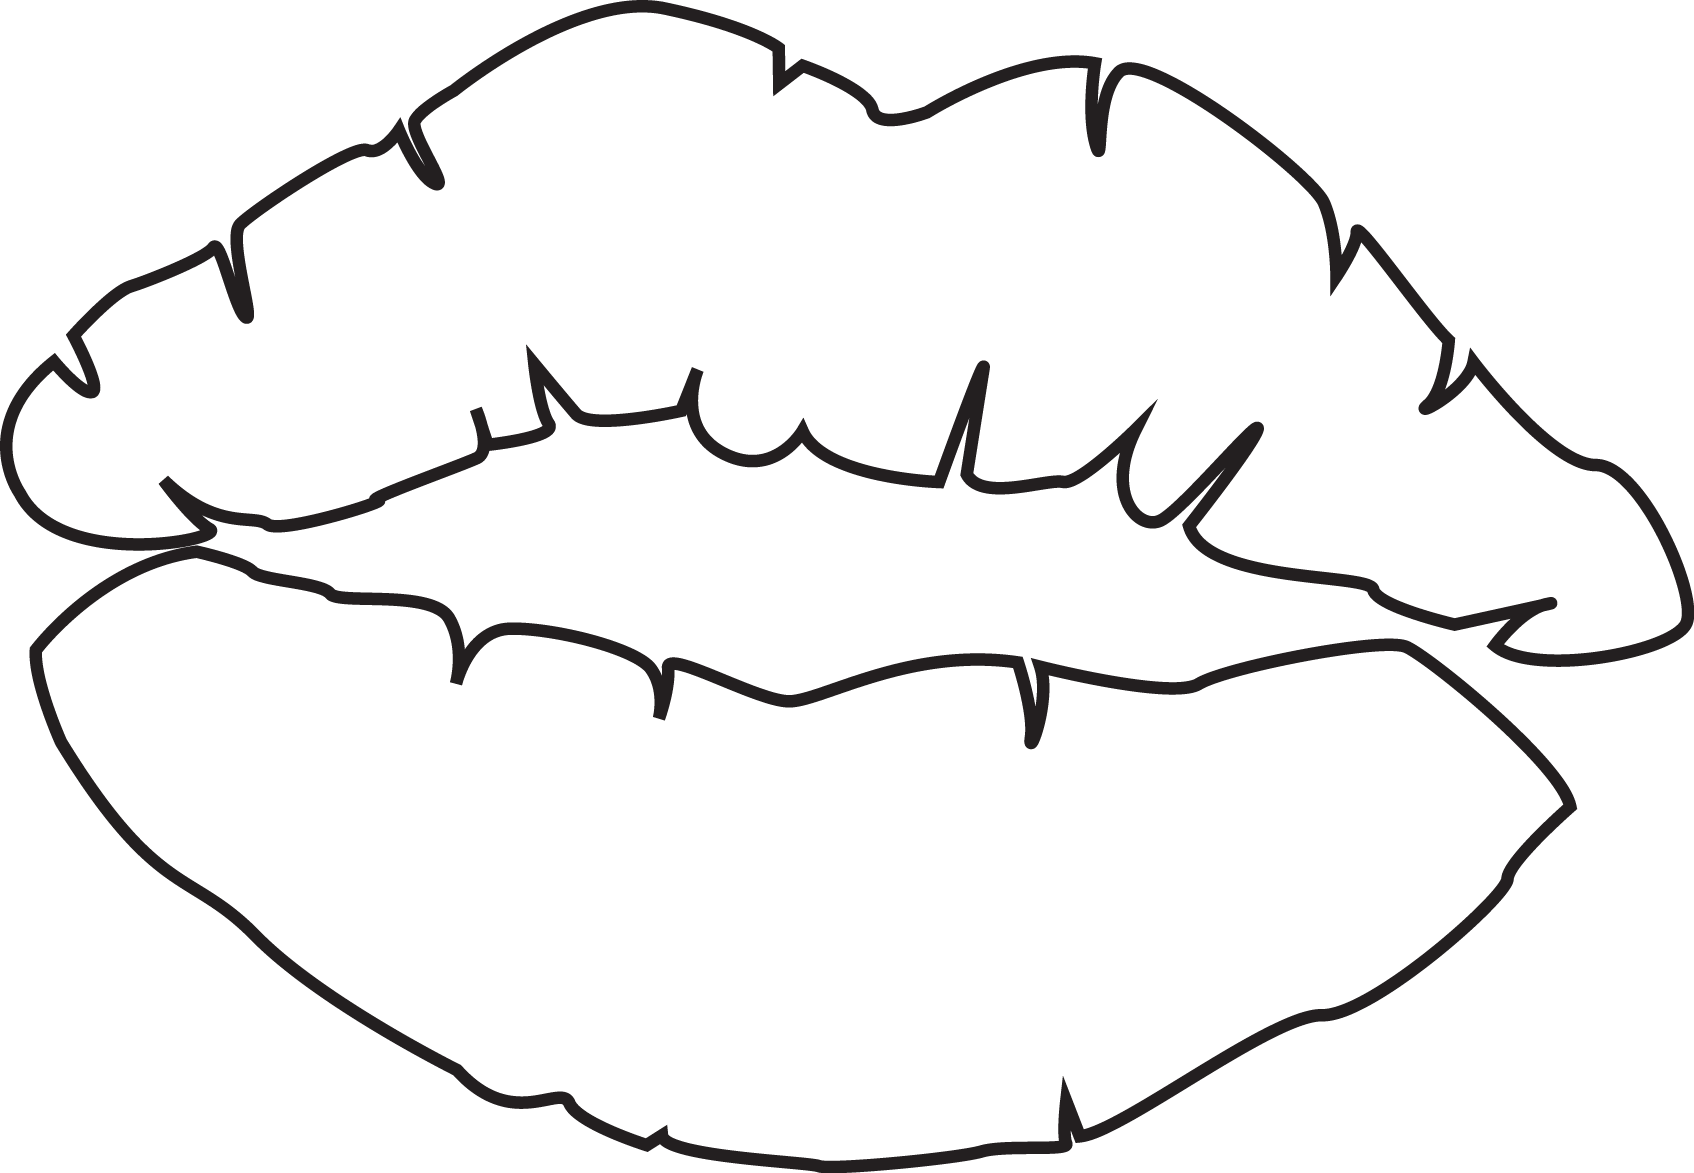 picture freeuse stock line drawing of lips